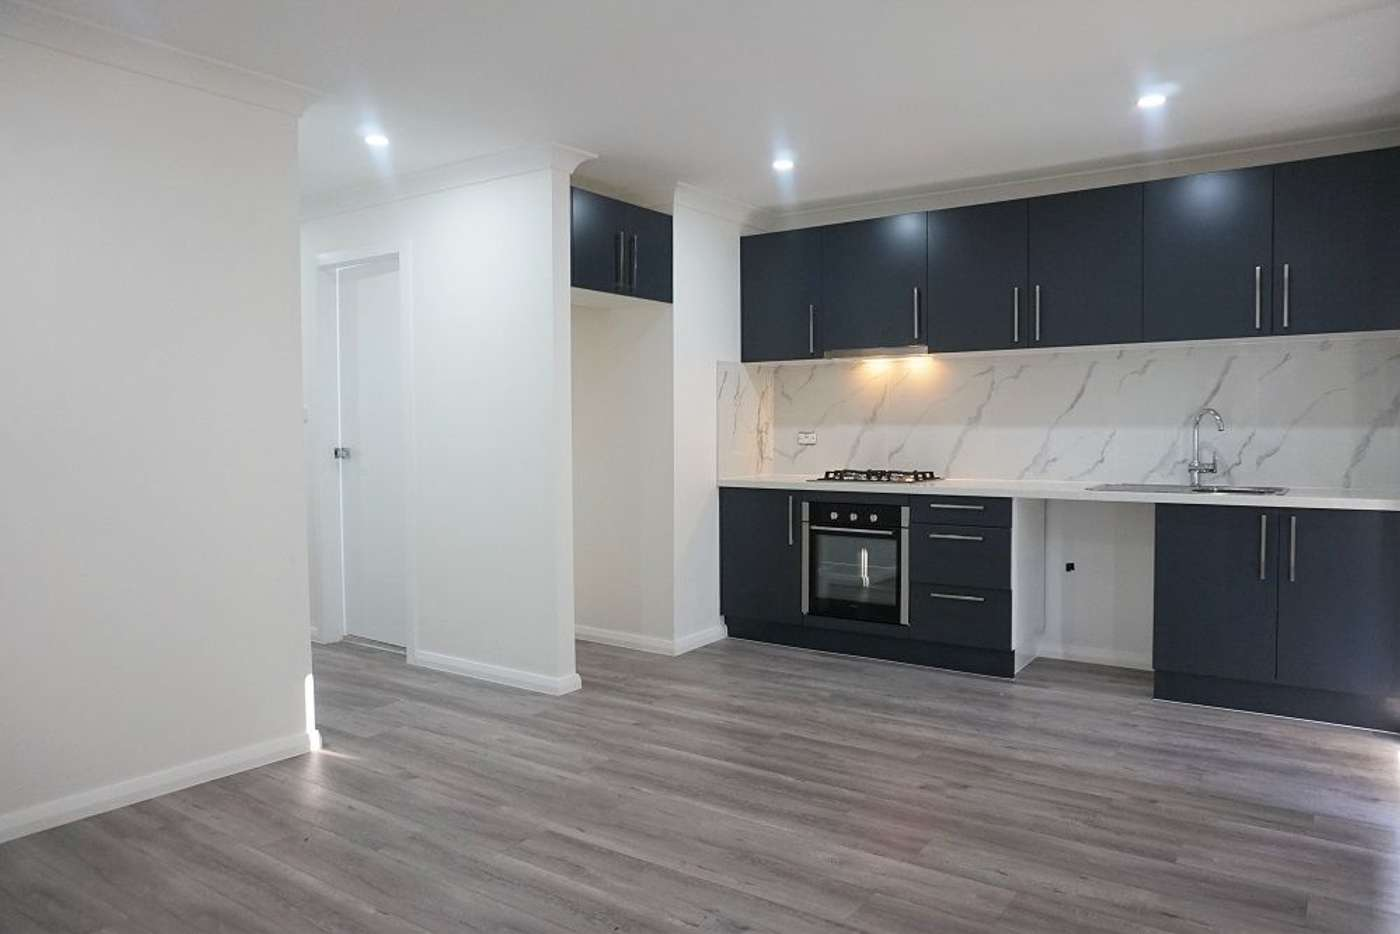 Main view of Homely house listing, 16a Culley Avenue, Denham Court NSW 2565